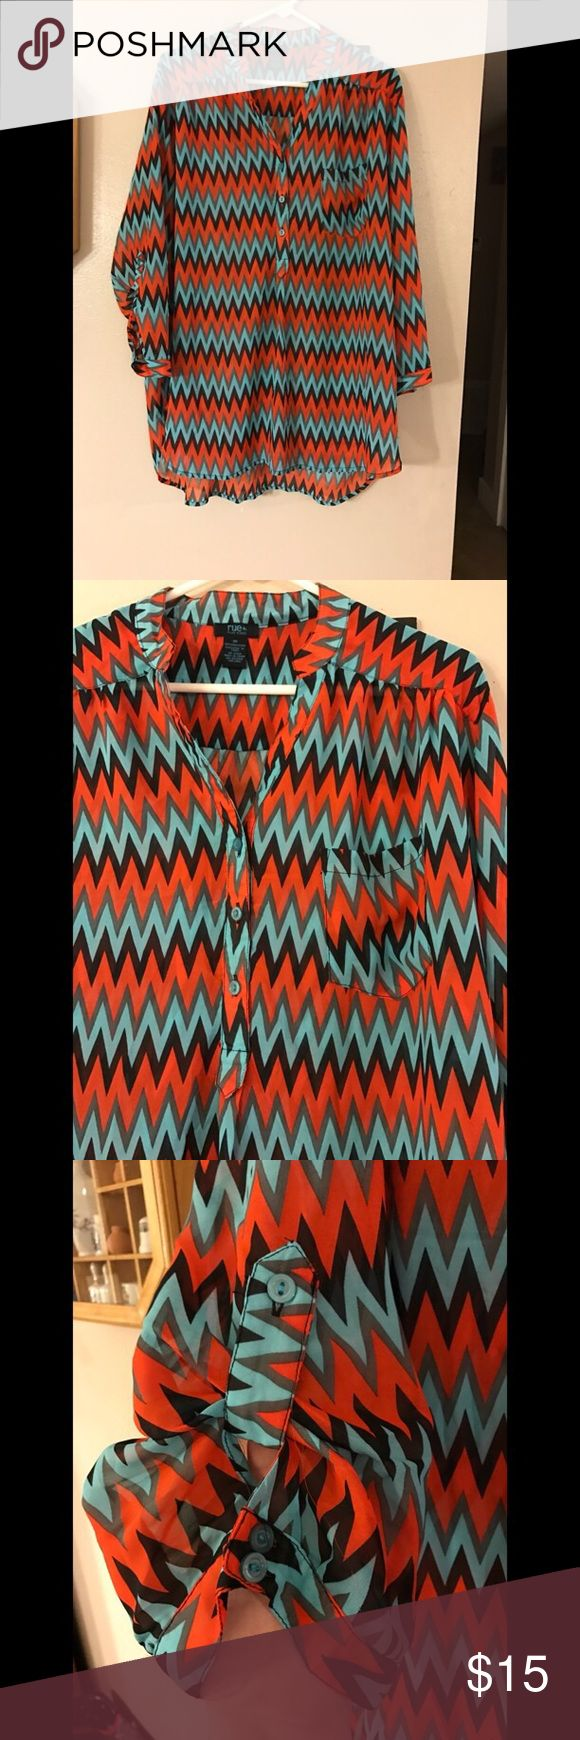 Chevron shirt Used. In good condition! Chevron shirt. 100% polyester! Rue 21 Tops Blouses